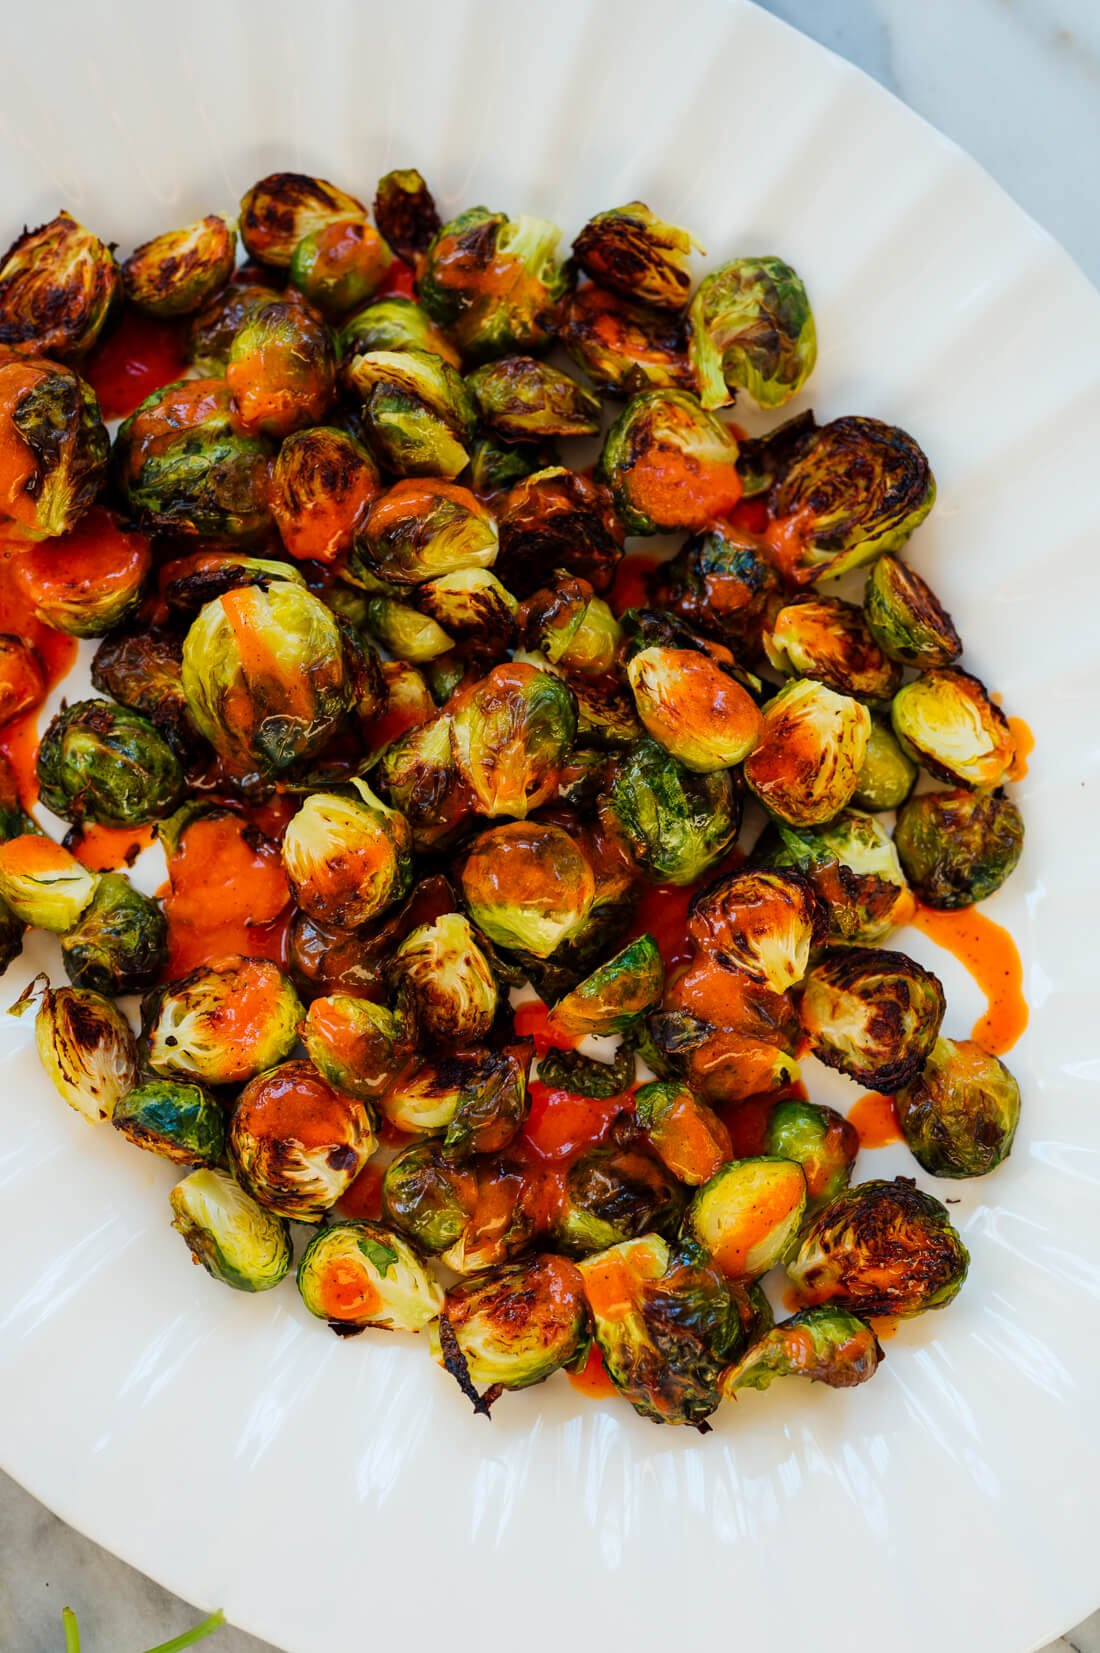 Buffalo sauce drizzled on Brussels sprouts